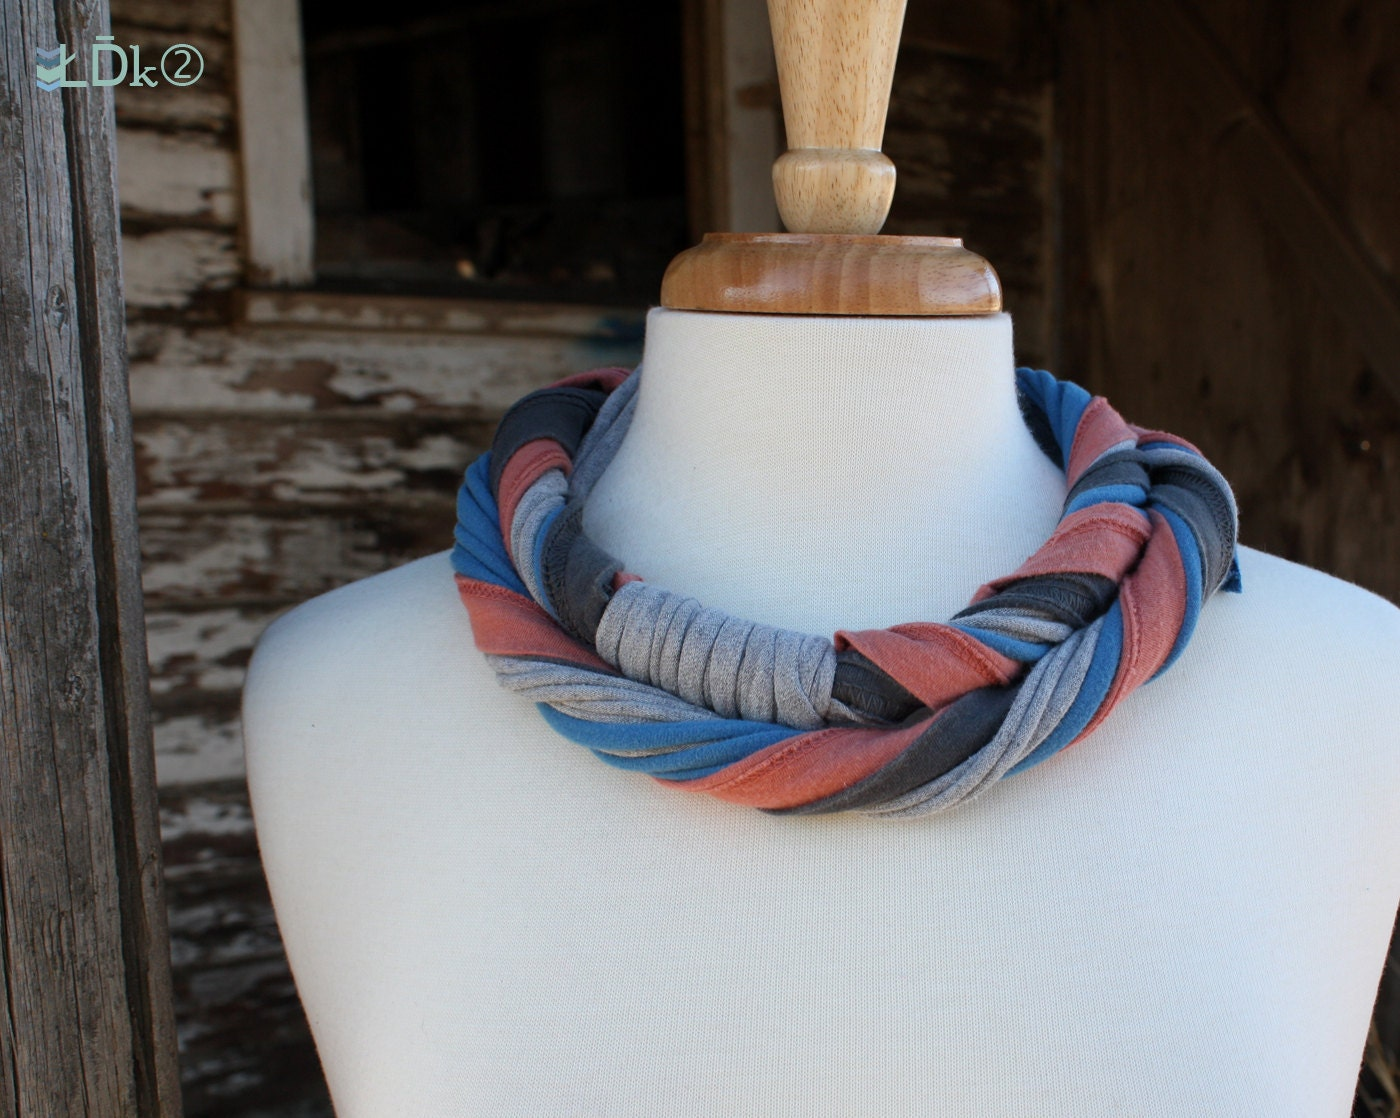 Casual Scrap Mix - LDk2 Cotton Jersey Scarf